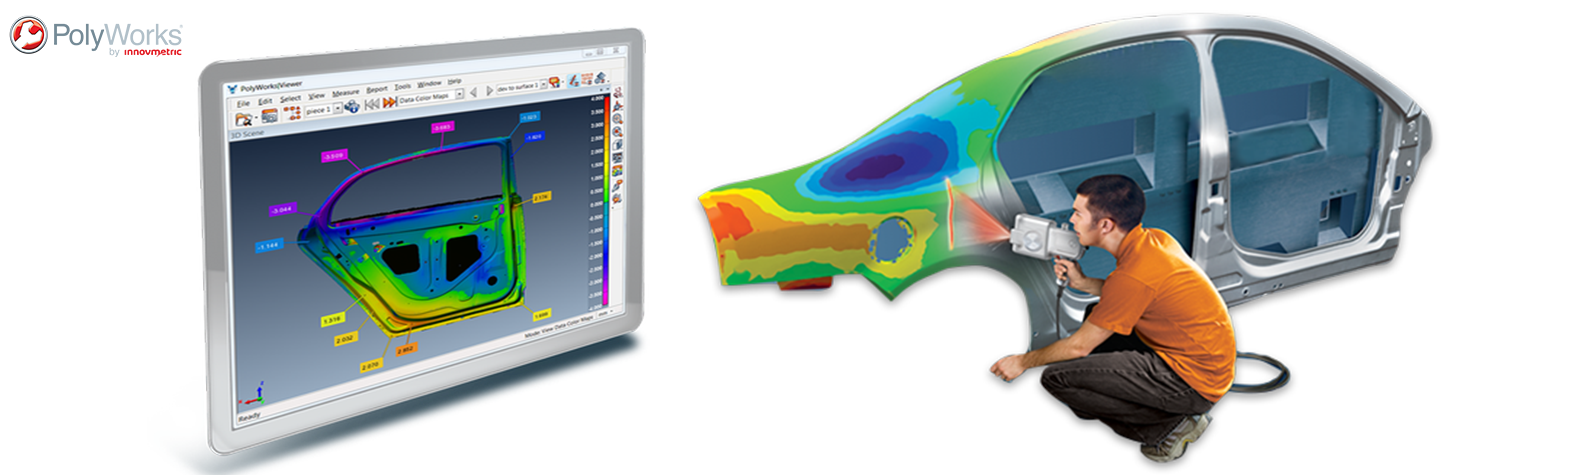 PolyWorks Metrology Inspection Software banner